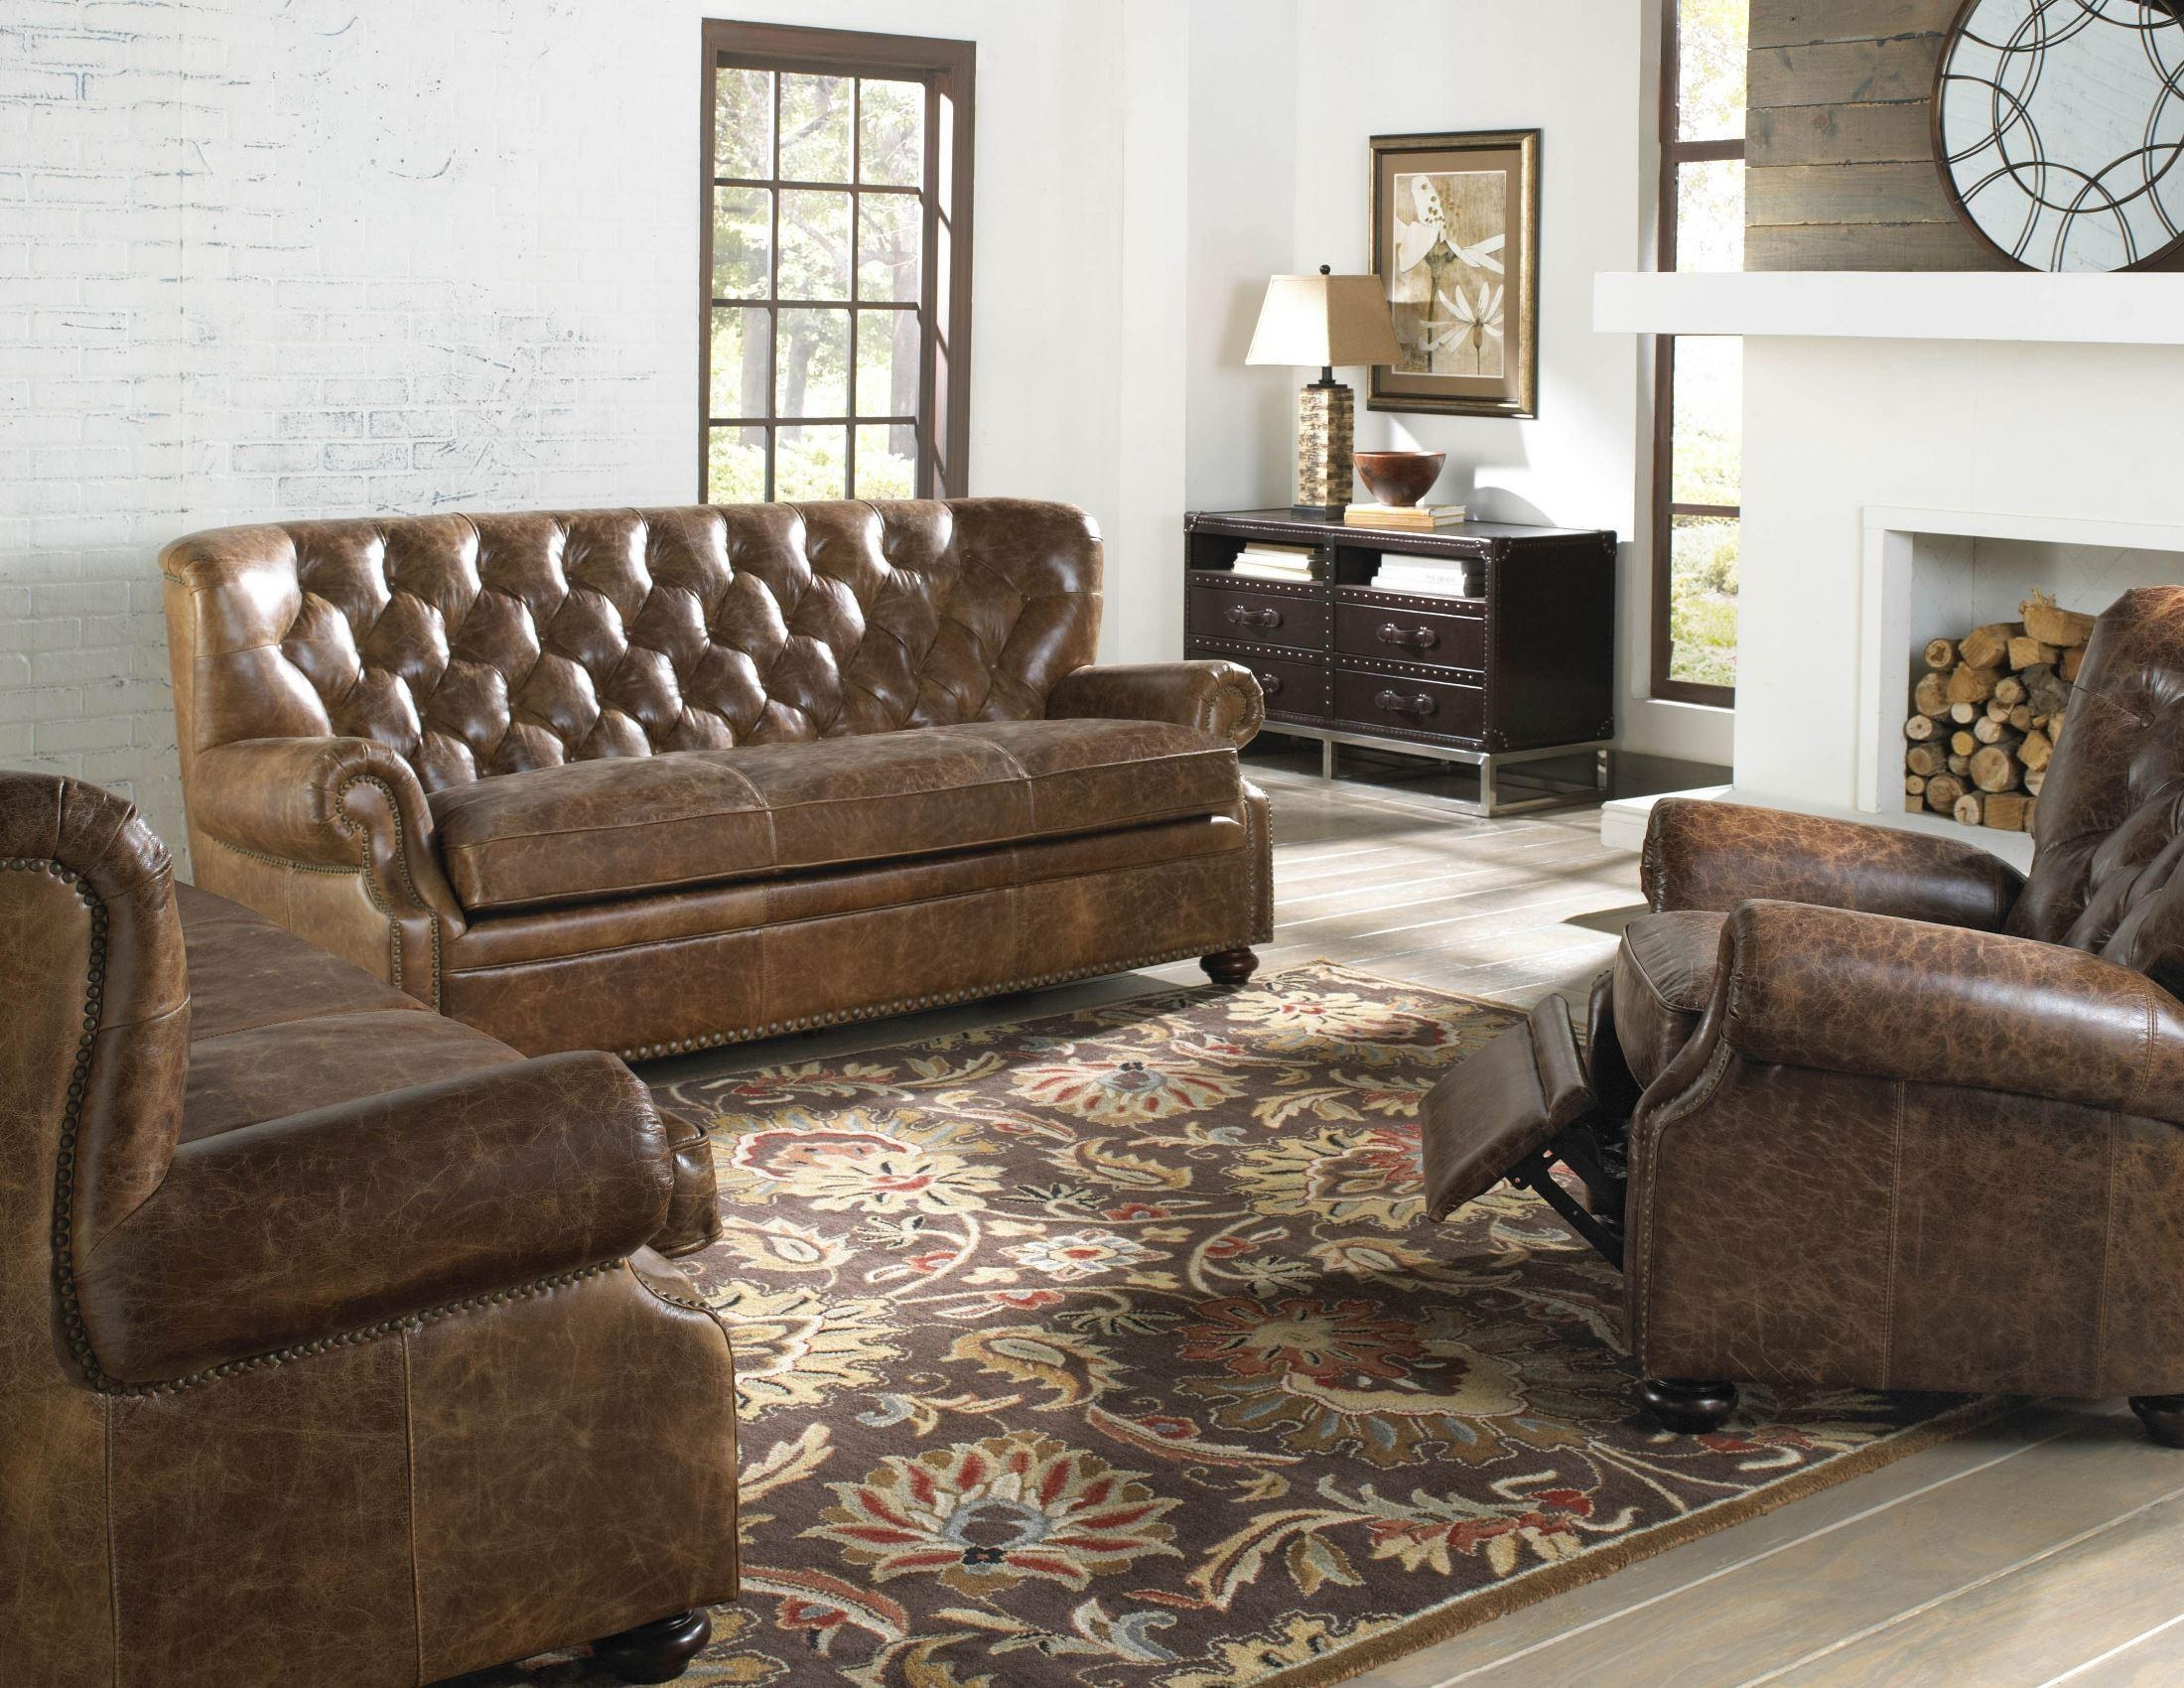 Louis Coco Brompton Leather Sofa From Lazzaro (Wh 1435 30 9021 Pertaining To Brompton Leather Sofas (View 20 of 20)